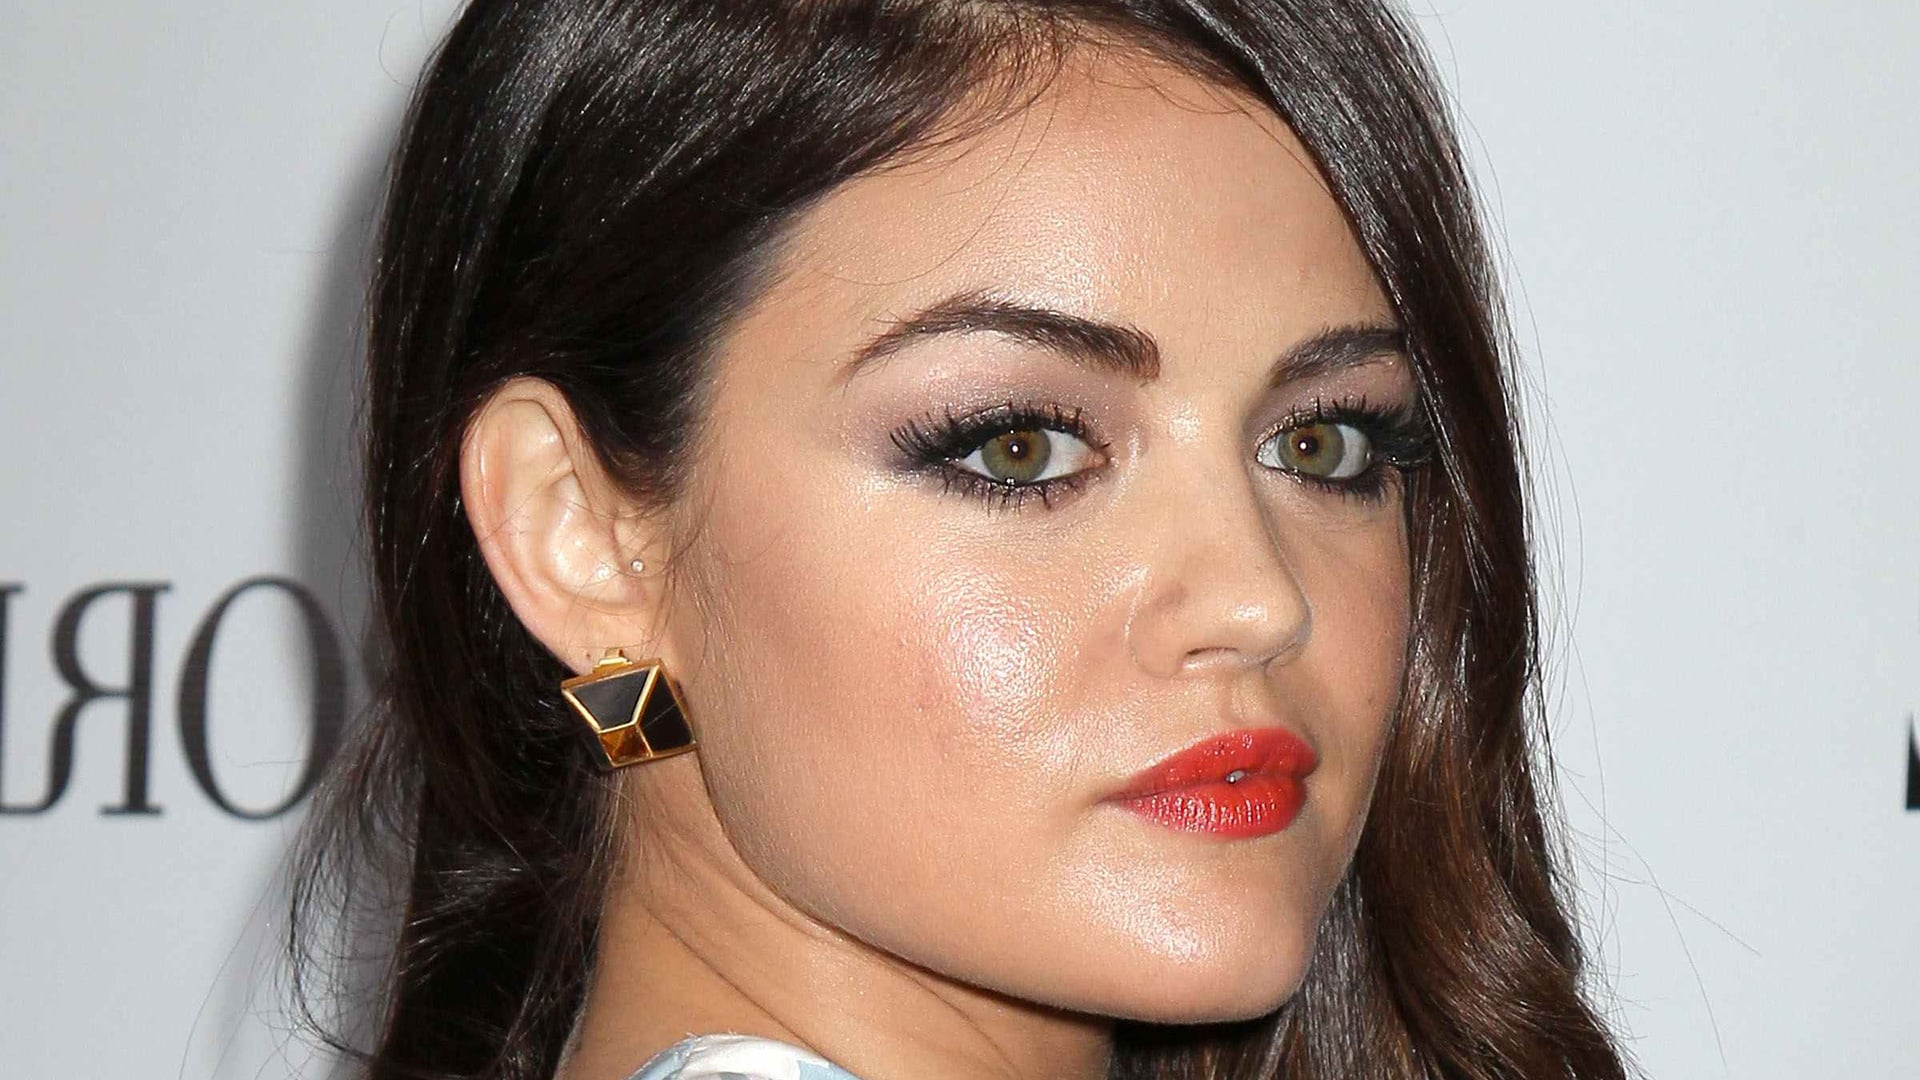 Cool Lucy Hale face makeup lips eyes photo